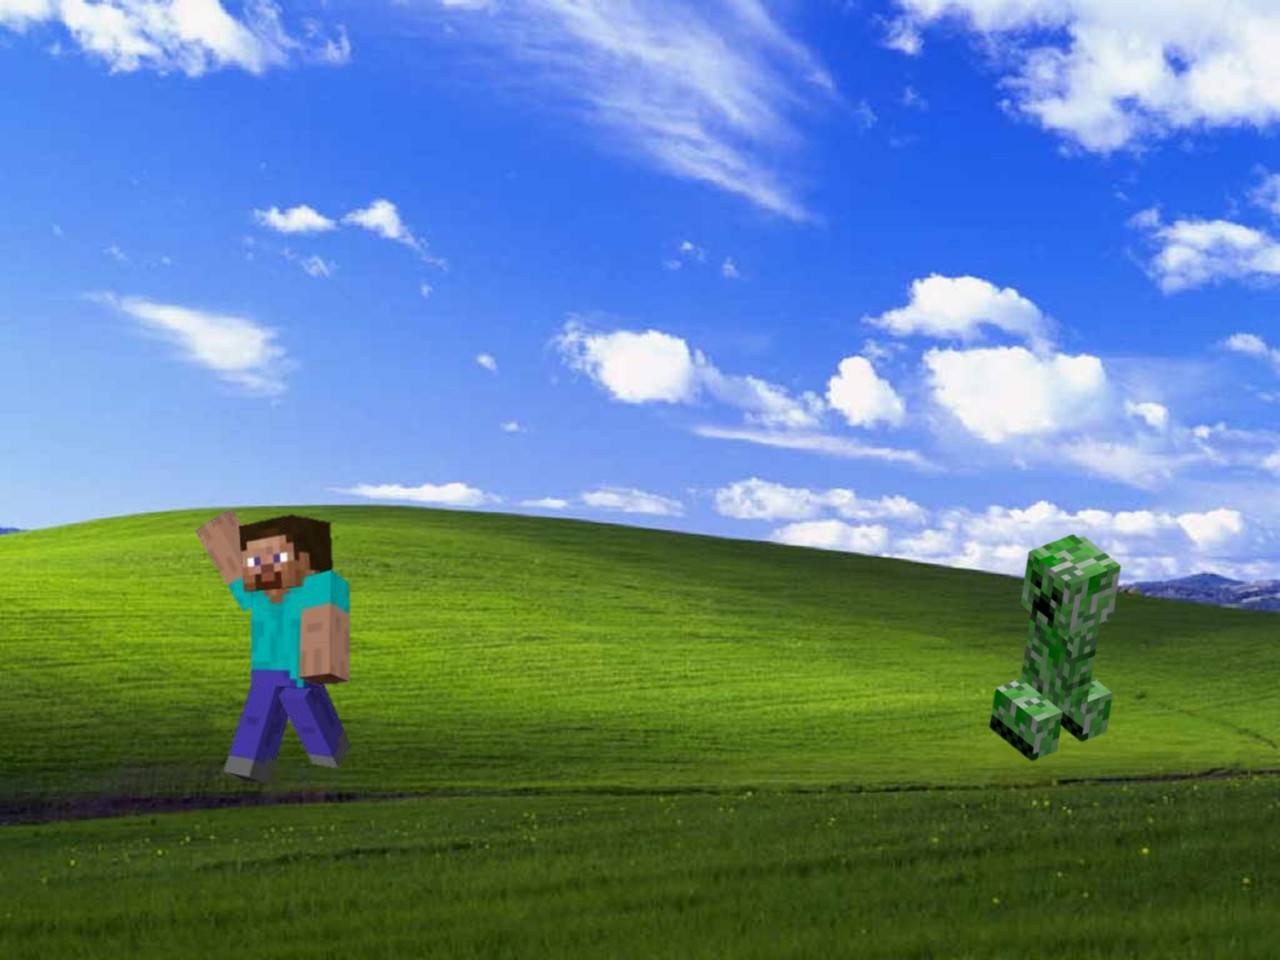 Top Wallpaper Minecraft Windows 7 - creper_2153359  Gallery_446960.jpg